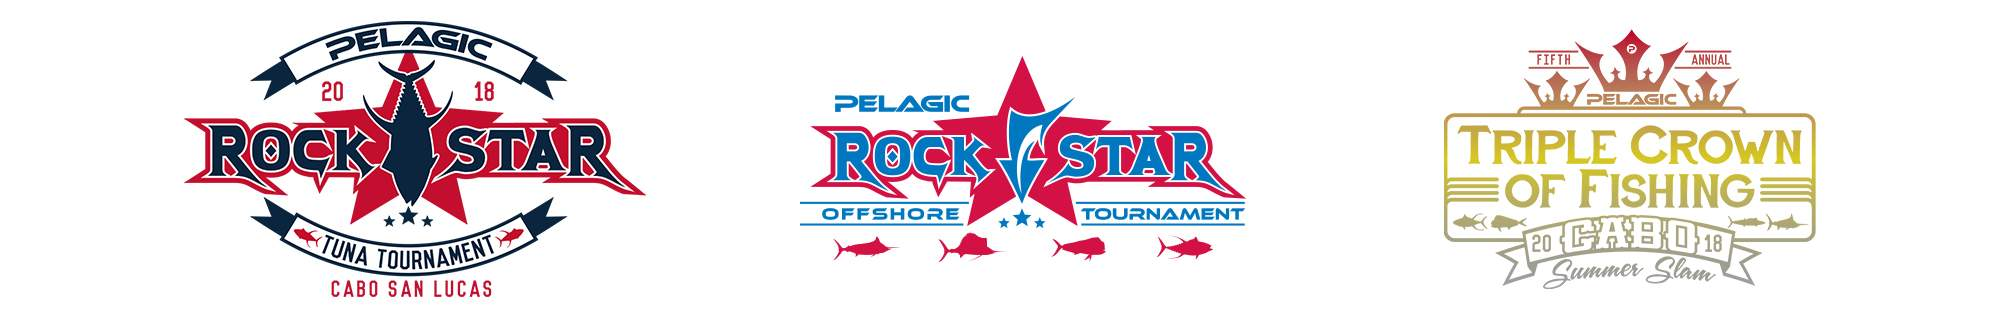 PELAGIC Rockstar Tournaments